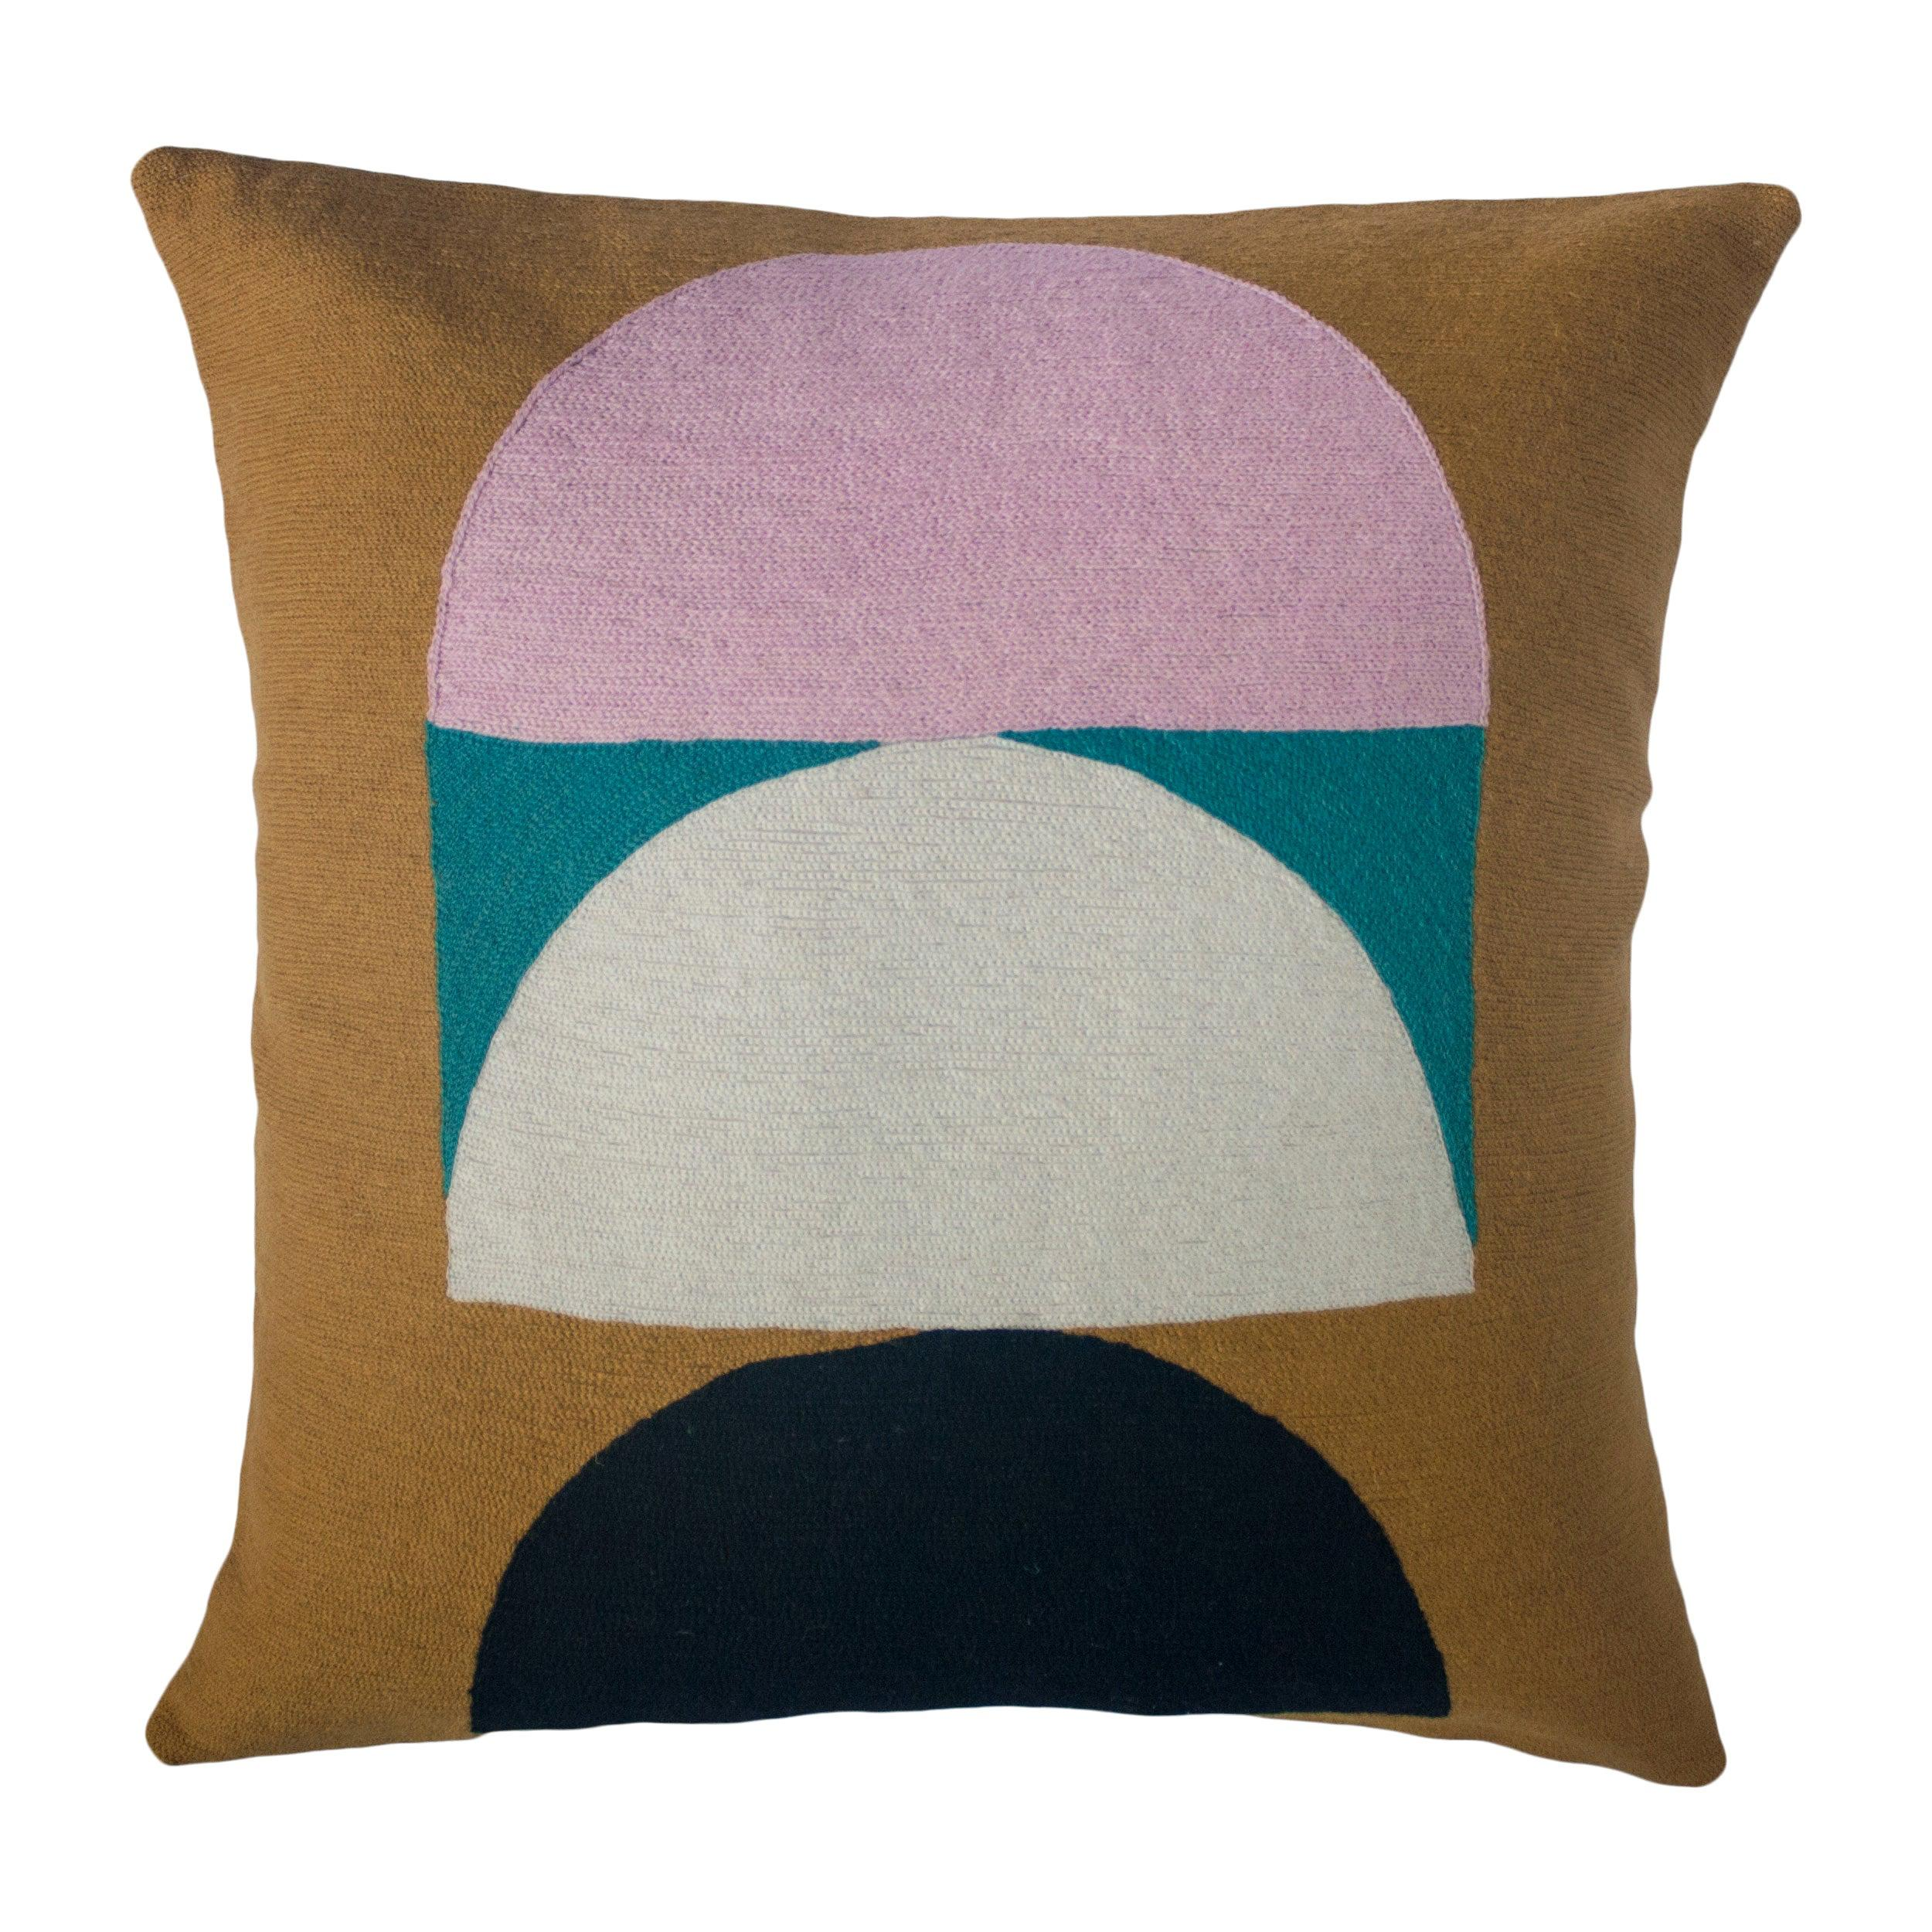 Viola Ochre Hand Embroidered Modern Geometric Throw Pillow Cover